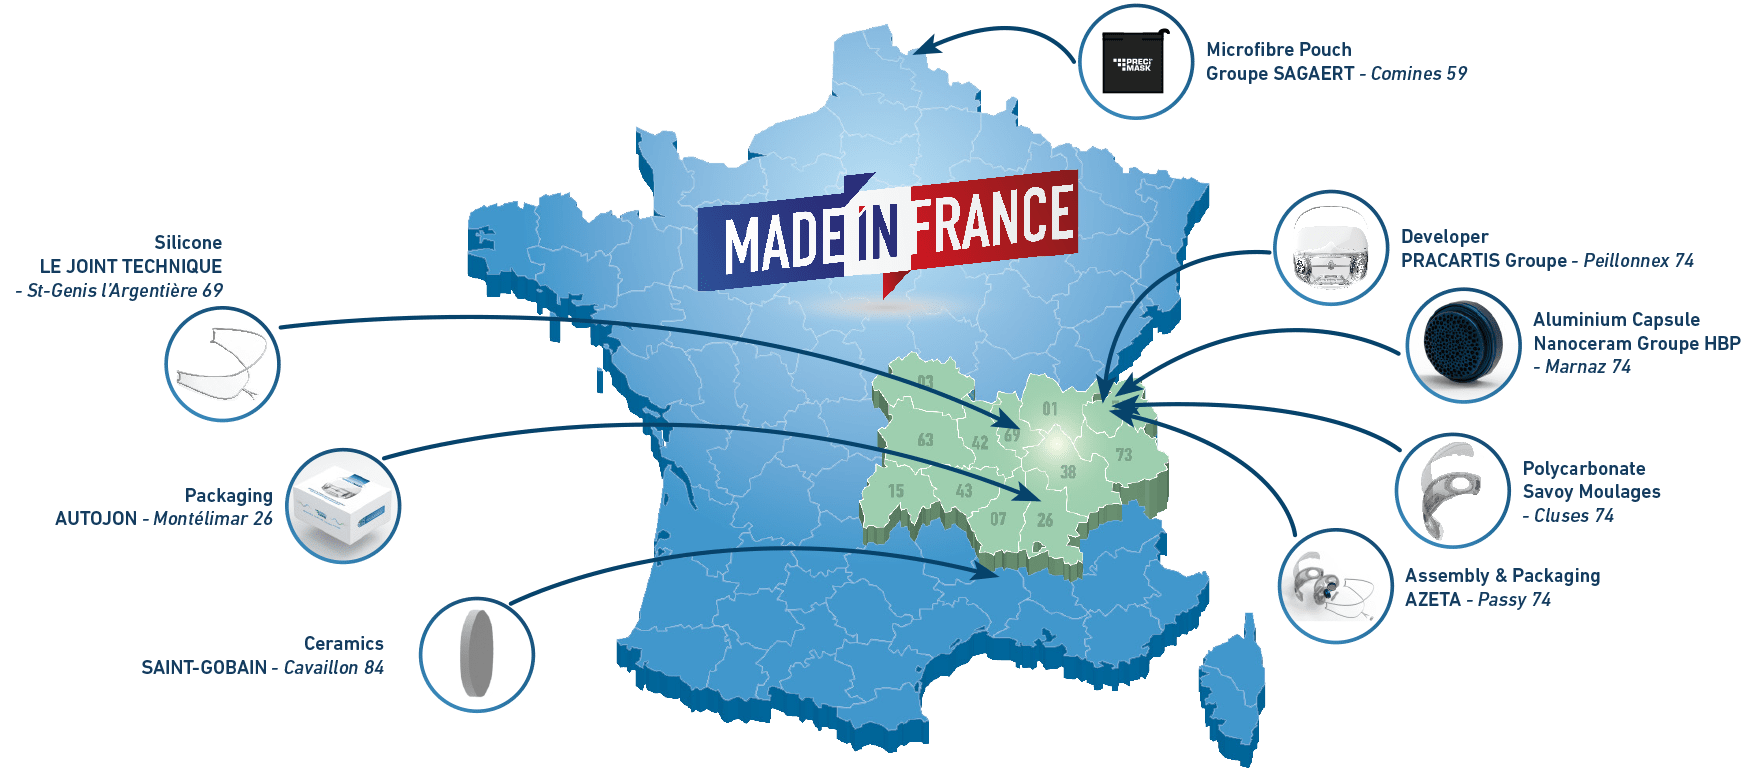 PRECIMASK - Made In France Map